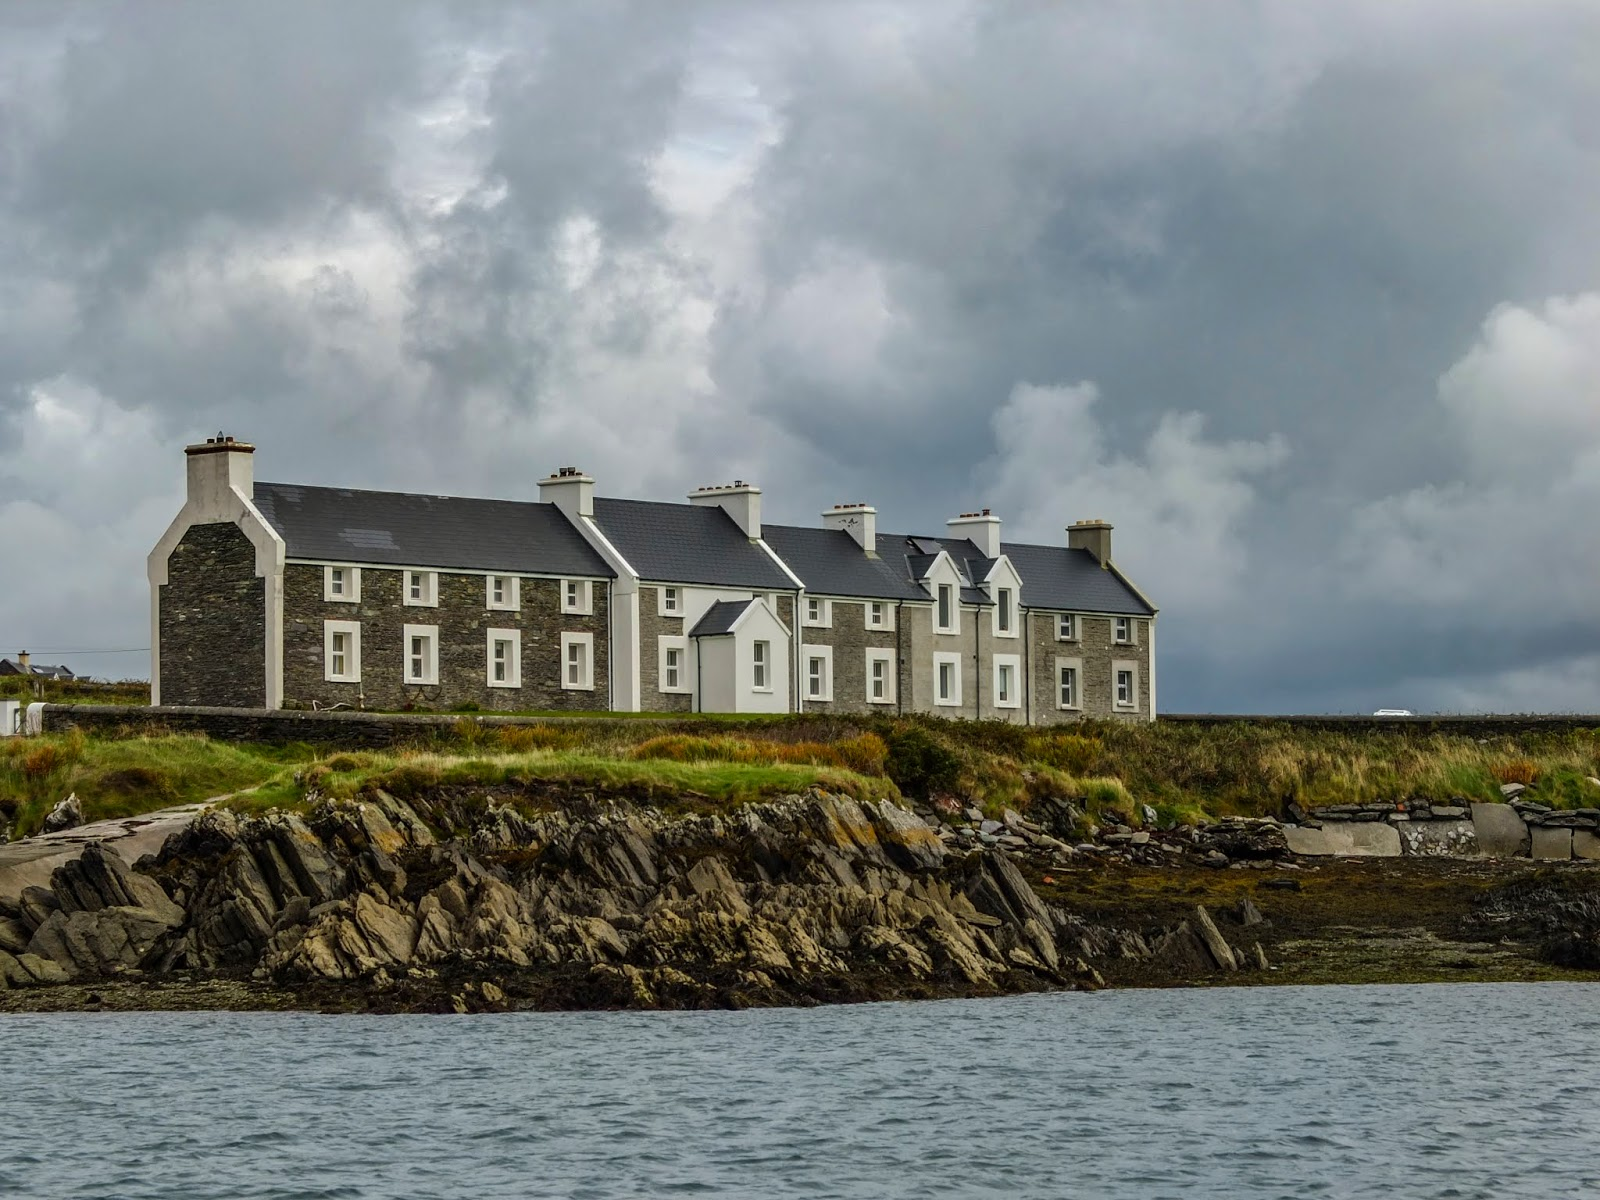 View of the Coastguard Cottages on Valentia Island, Co.Kerry captured from the water.